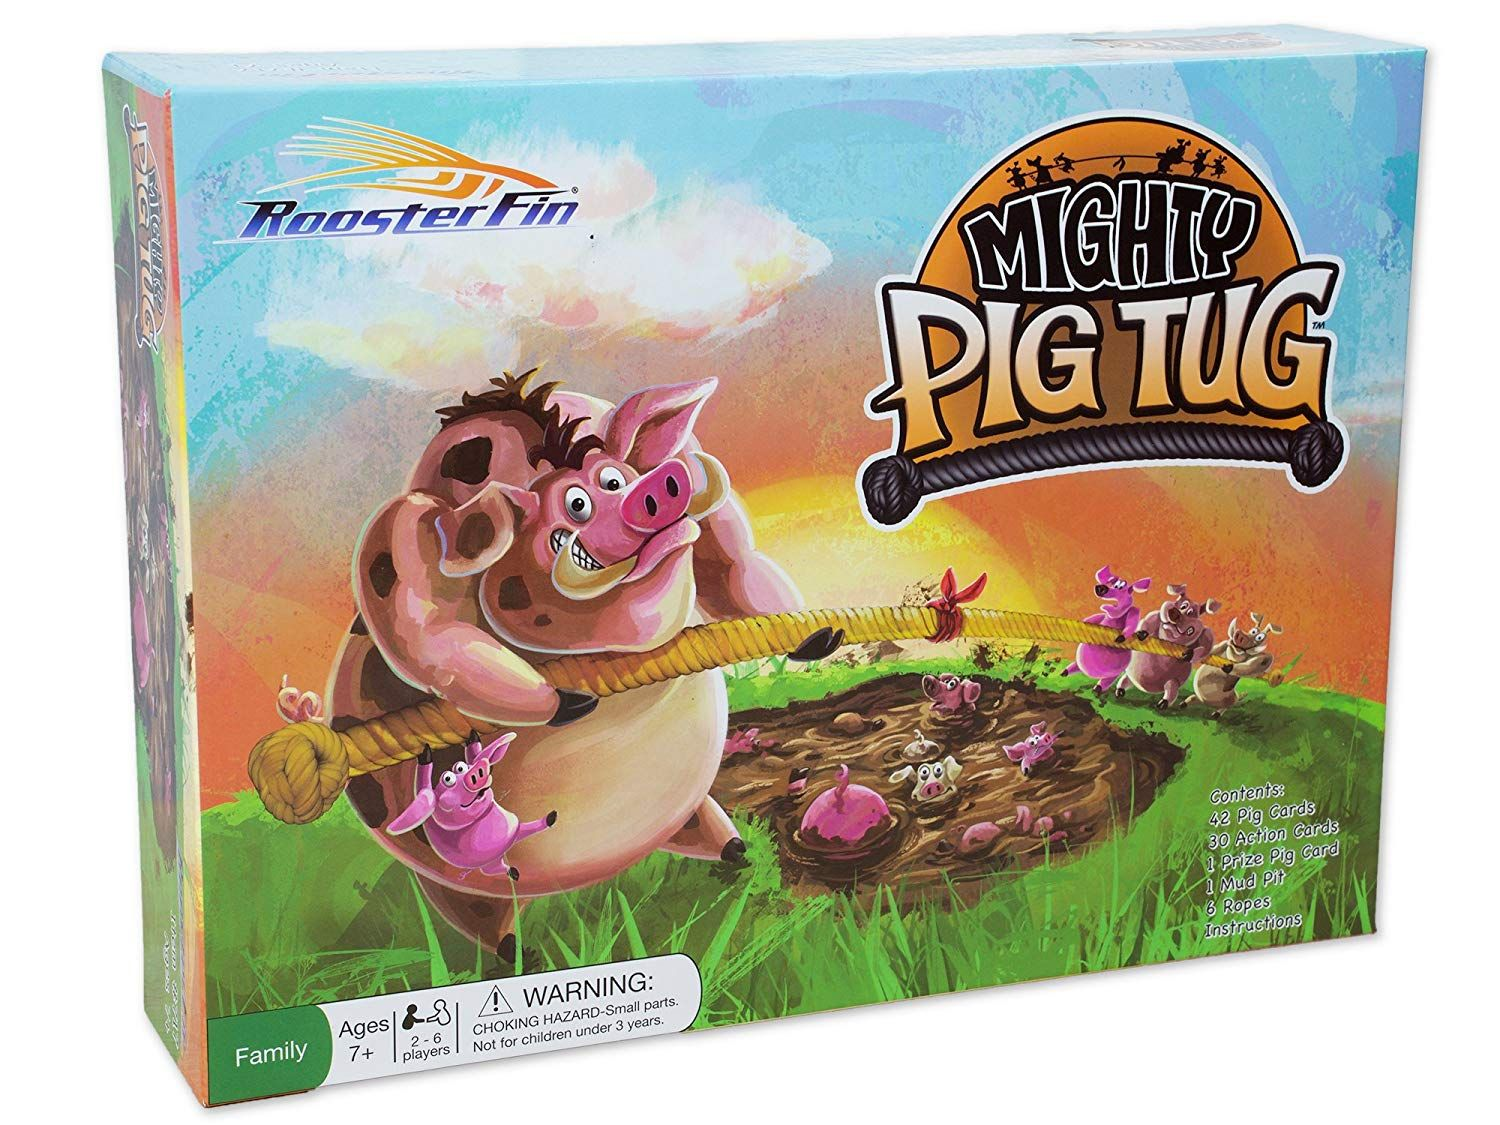 Mighty Pig Tug Family Board Game – Card Game of Tug of